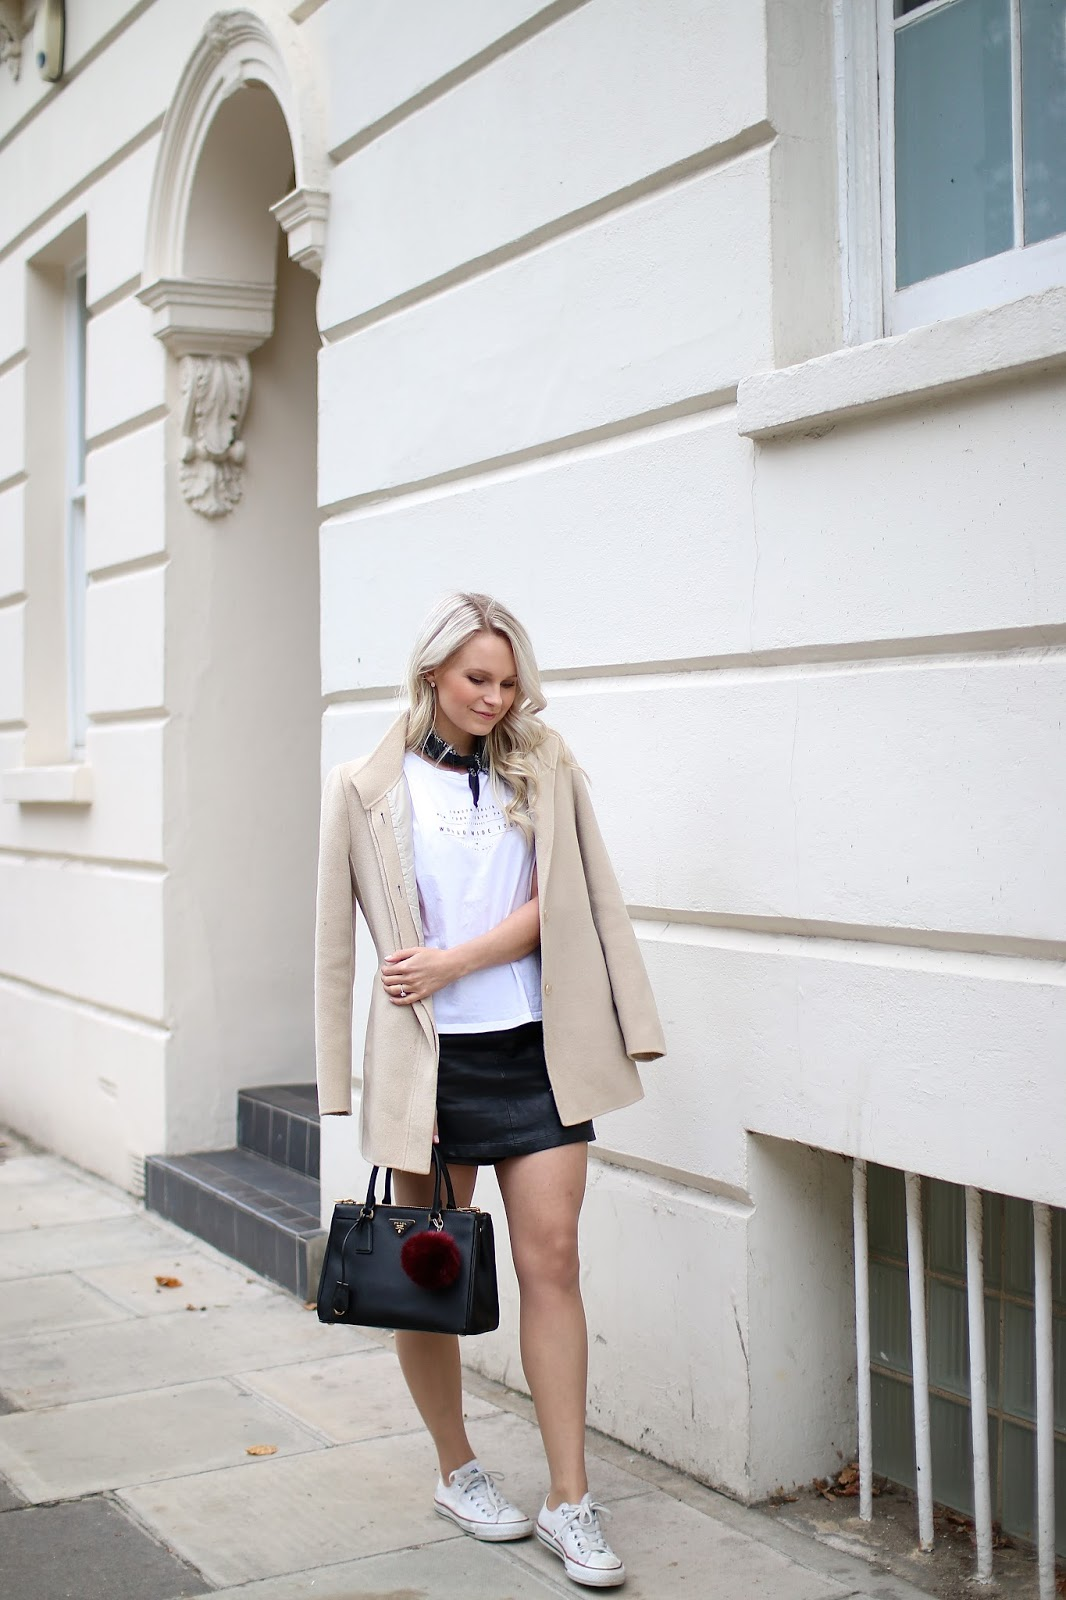 blogger wandering through the beautiful streets of notting hill, wearing forever21 leather skirt, white converse shoes and prada handbag